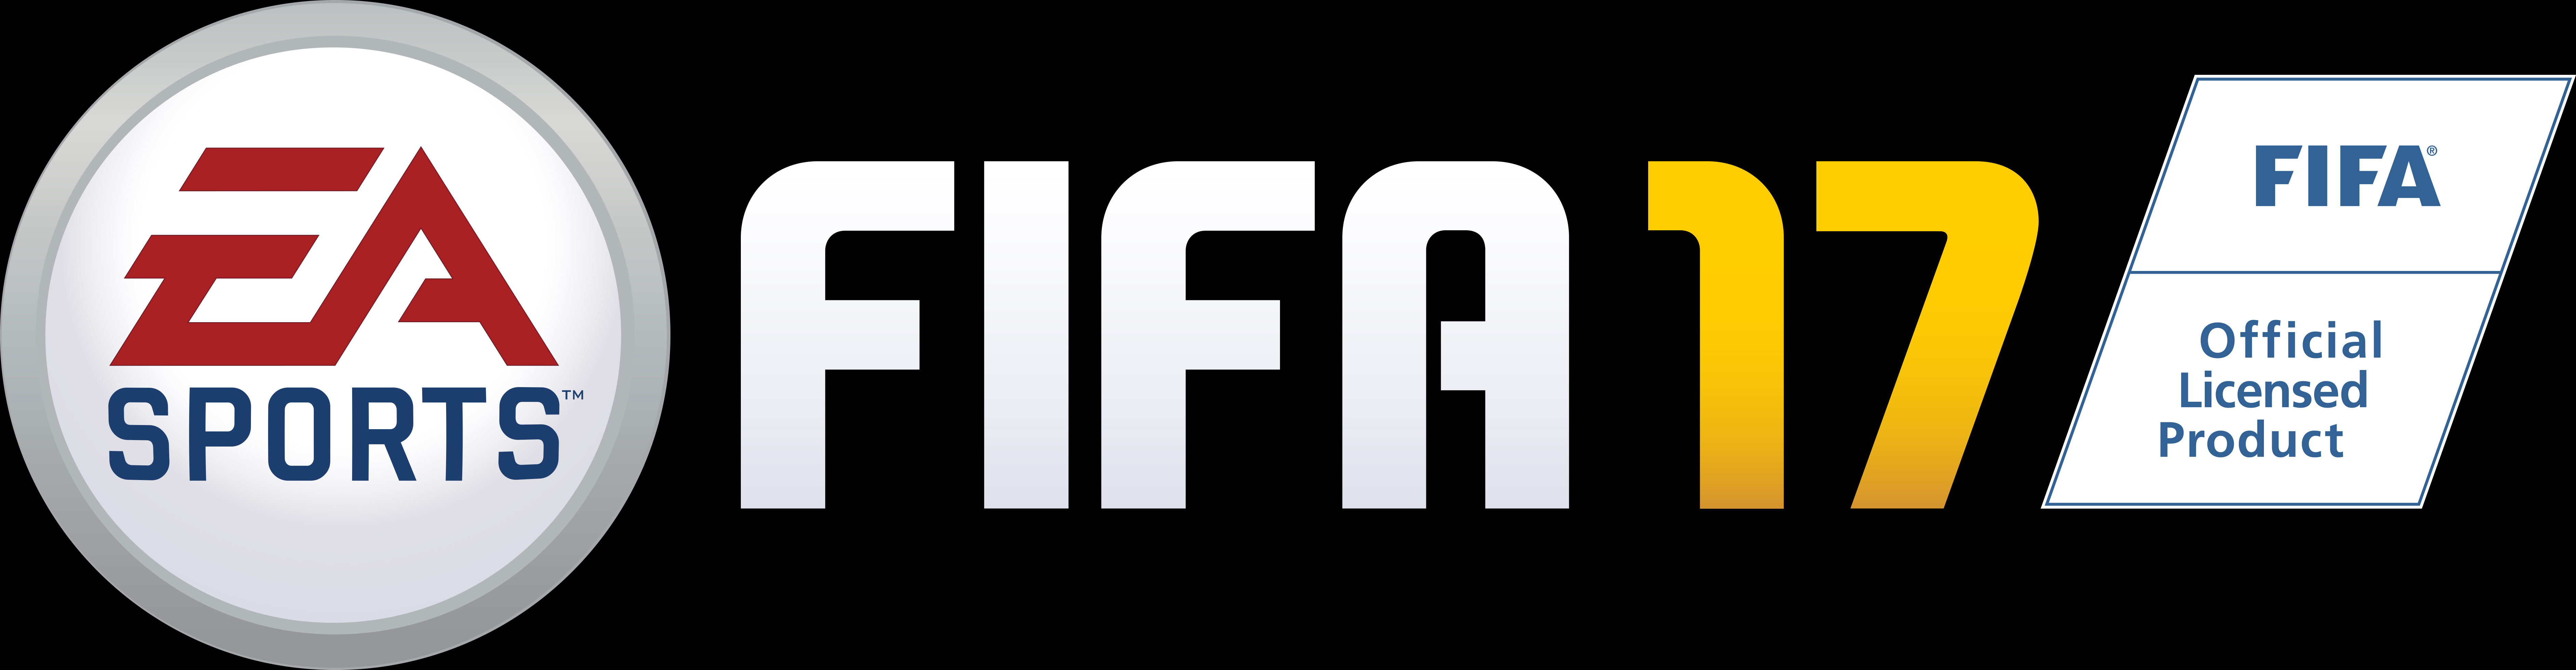 Download The Official High Resolution FIFA 17 Logo.